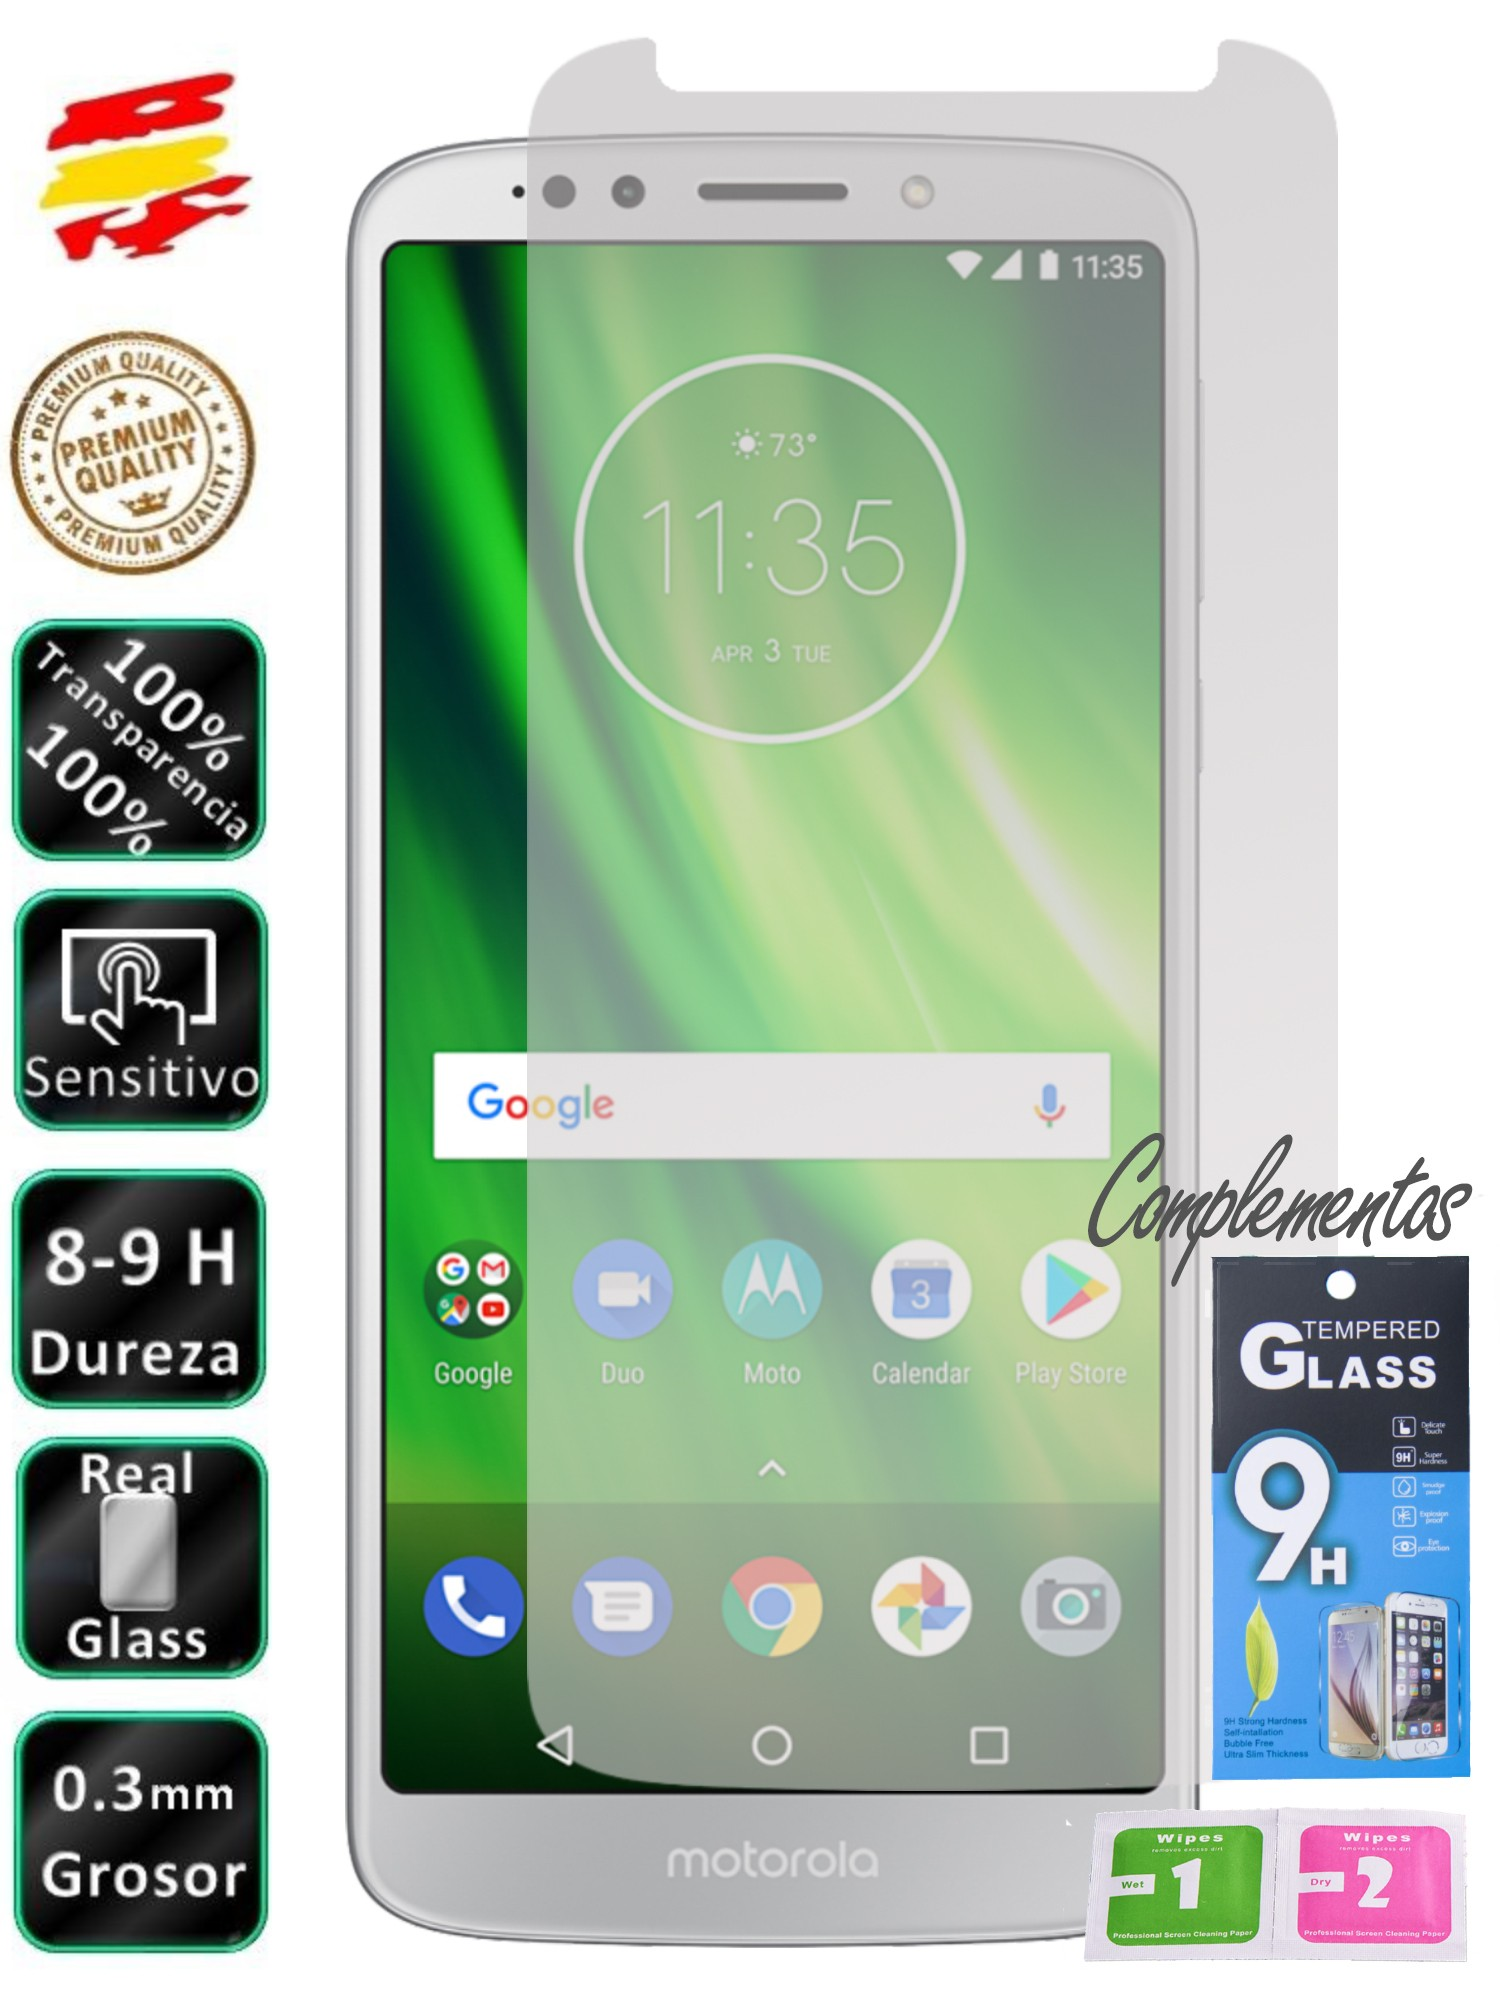 Motorola Protective Motorbike G6 Play Tempered Glass Screen Mobile